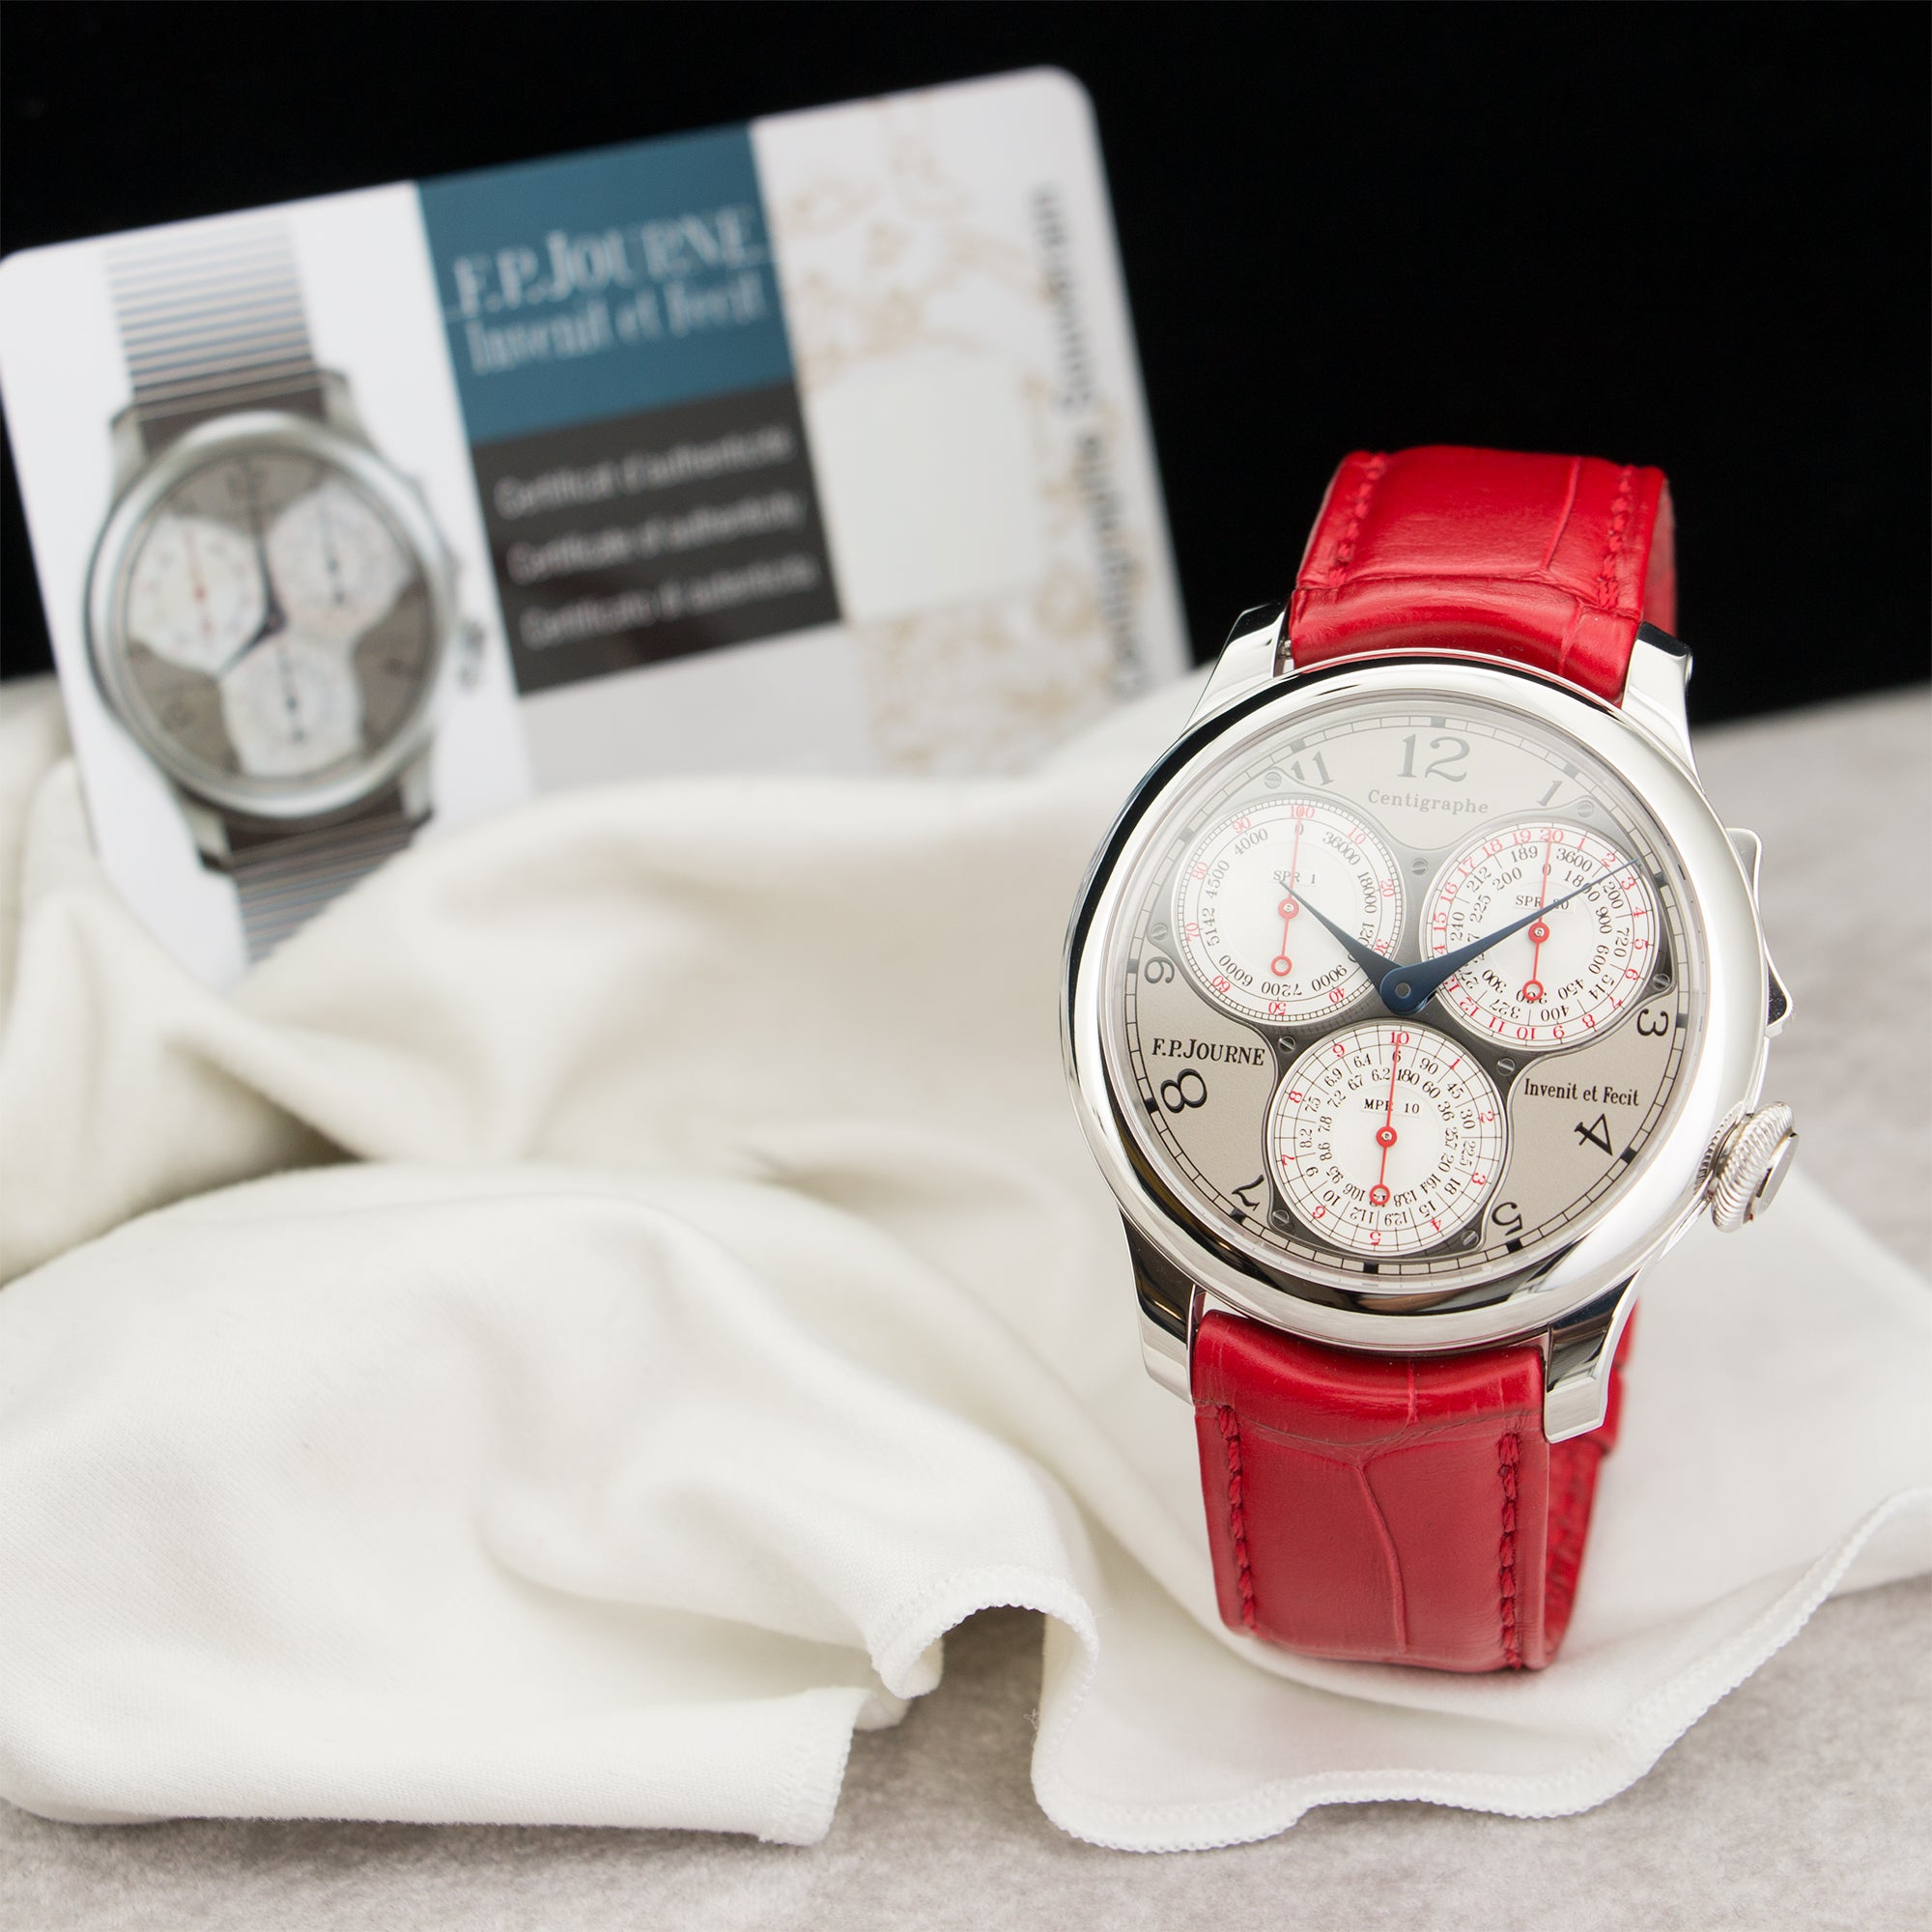 FP Journe Centrigraphe N/A Platinum  Unworn Gents Platinum Grey 40mm Manual Current Red Crocodile Strap B+P